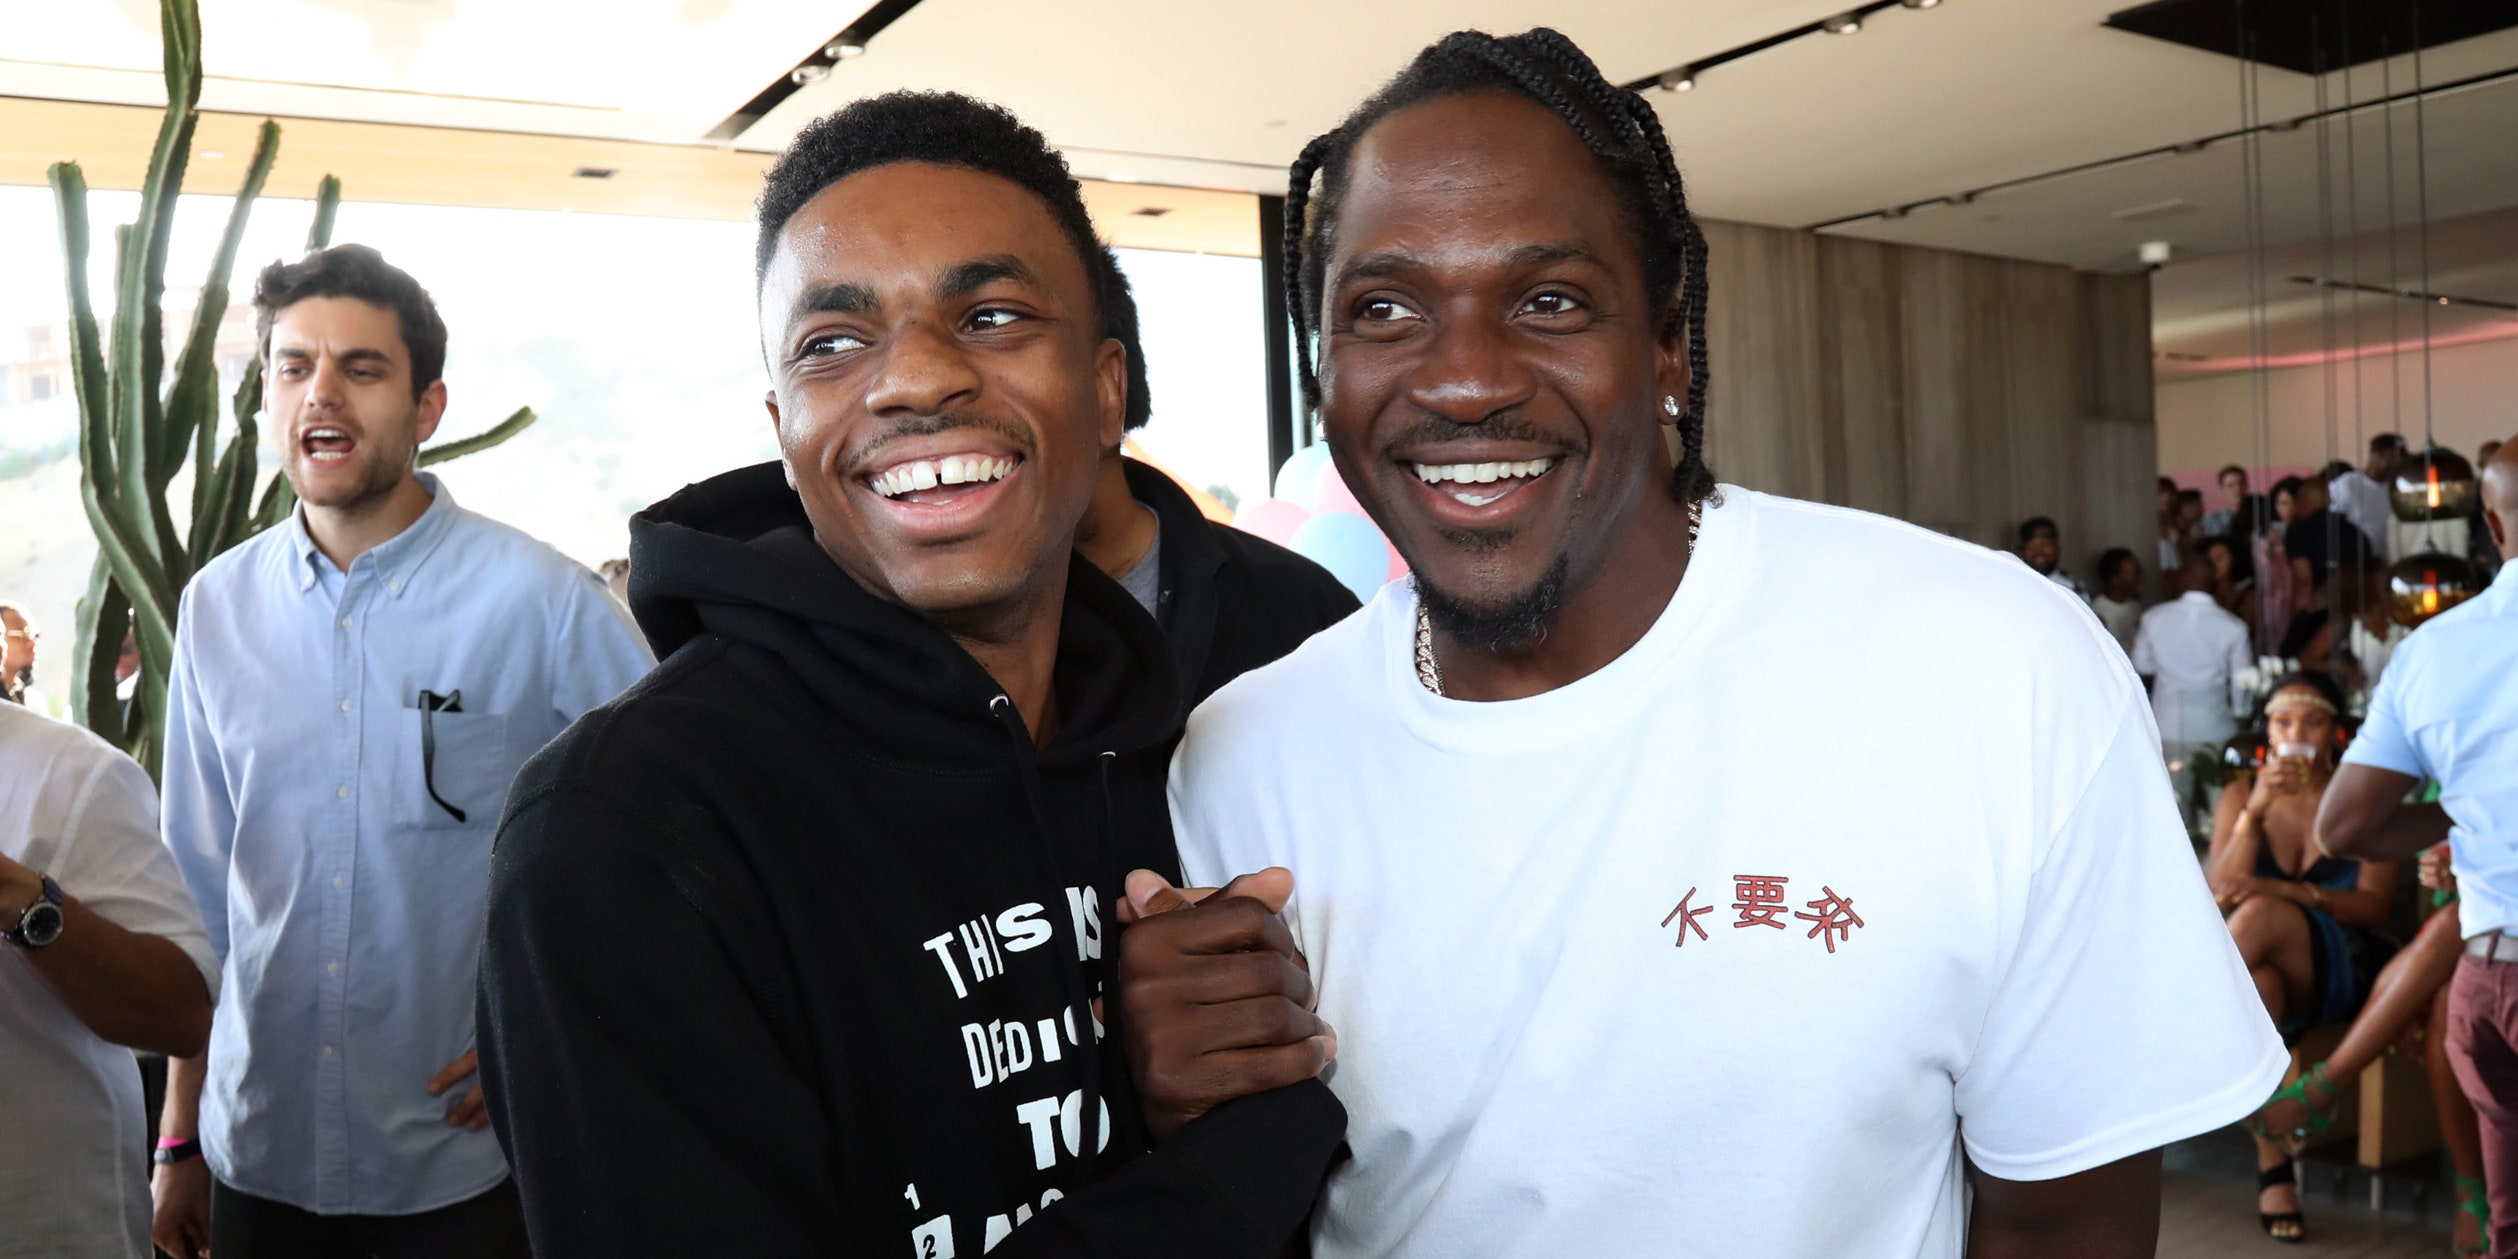 Vince Staples and Pusha T